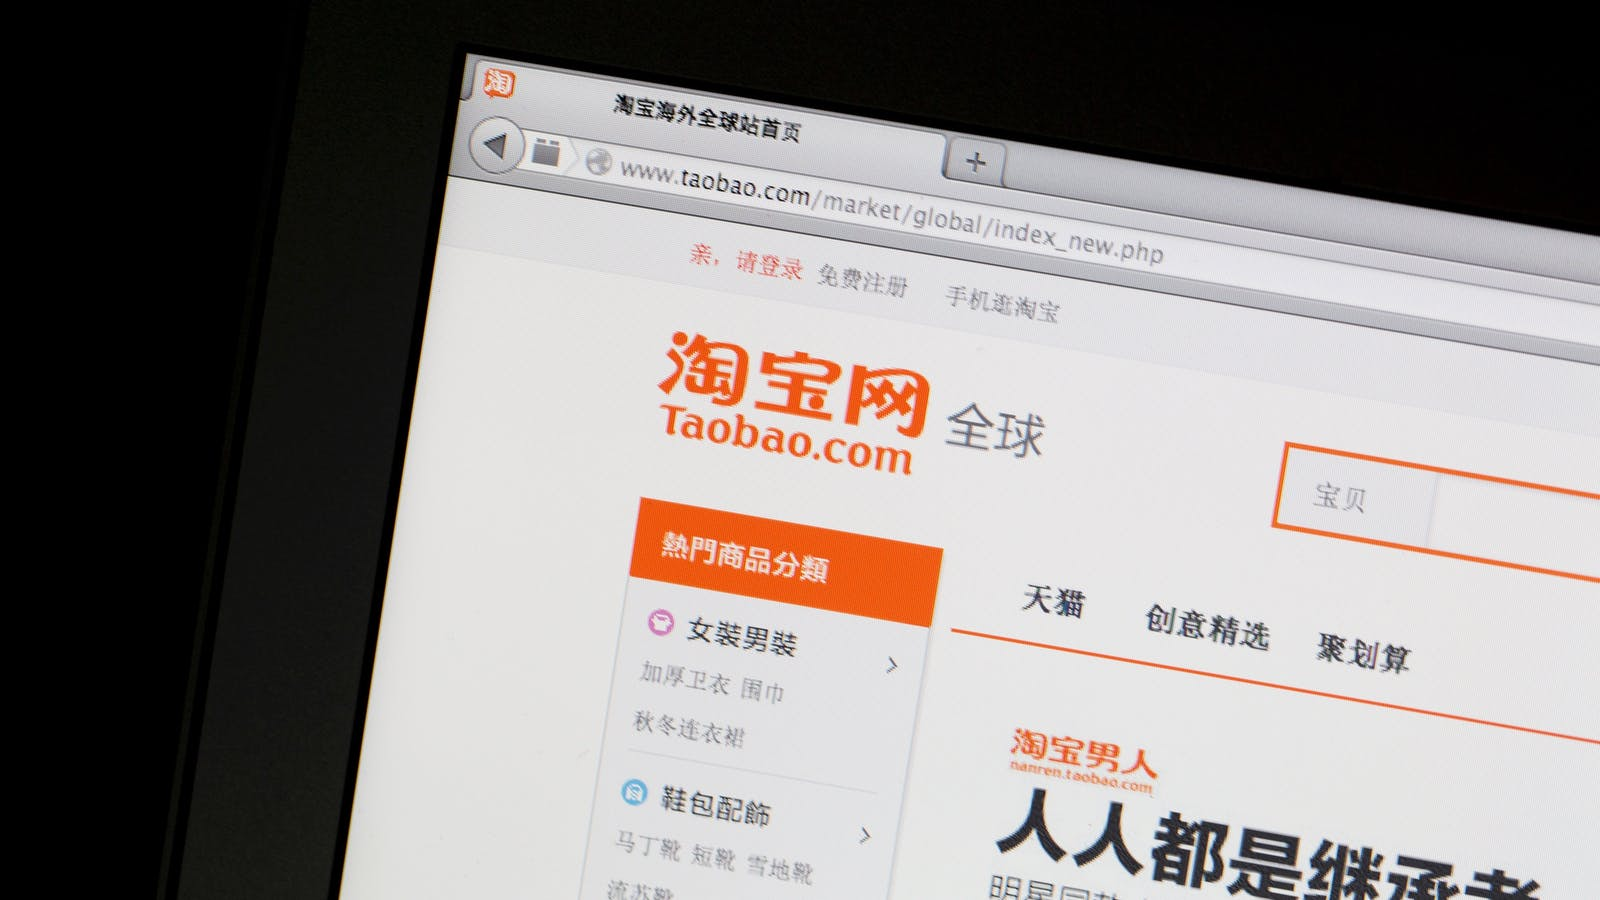 Taobao's web site. Photo by Bloomberg